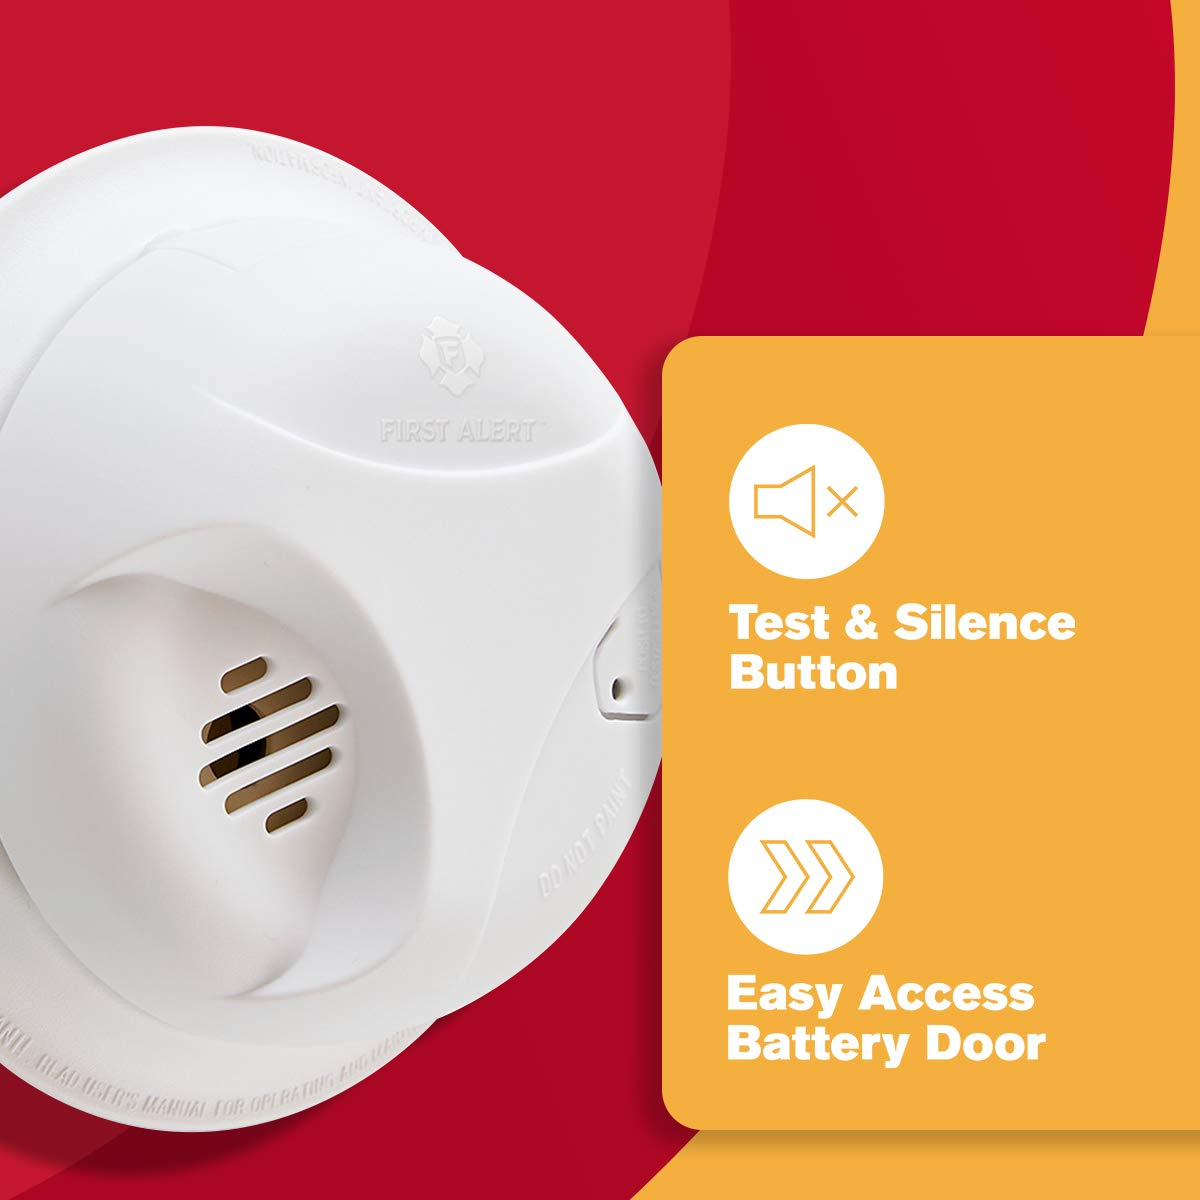 First Alert Sa303cn3 Battery Powered Smoke Alarm With Silence Button Related Links More Circuit About Detectors